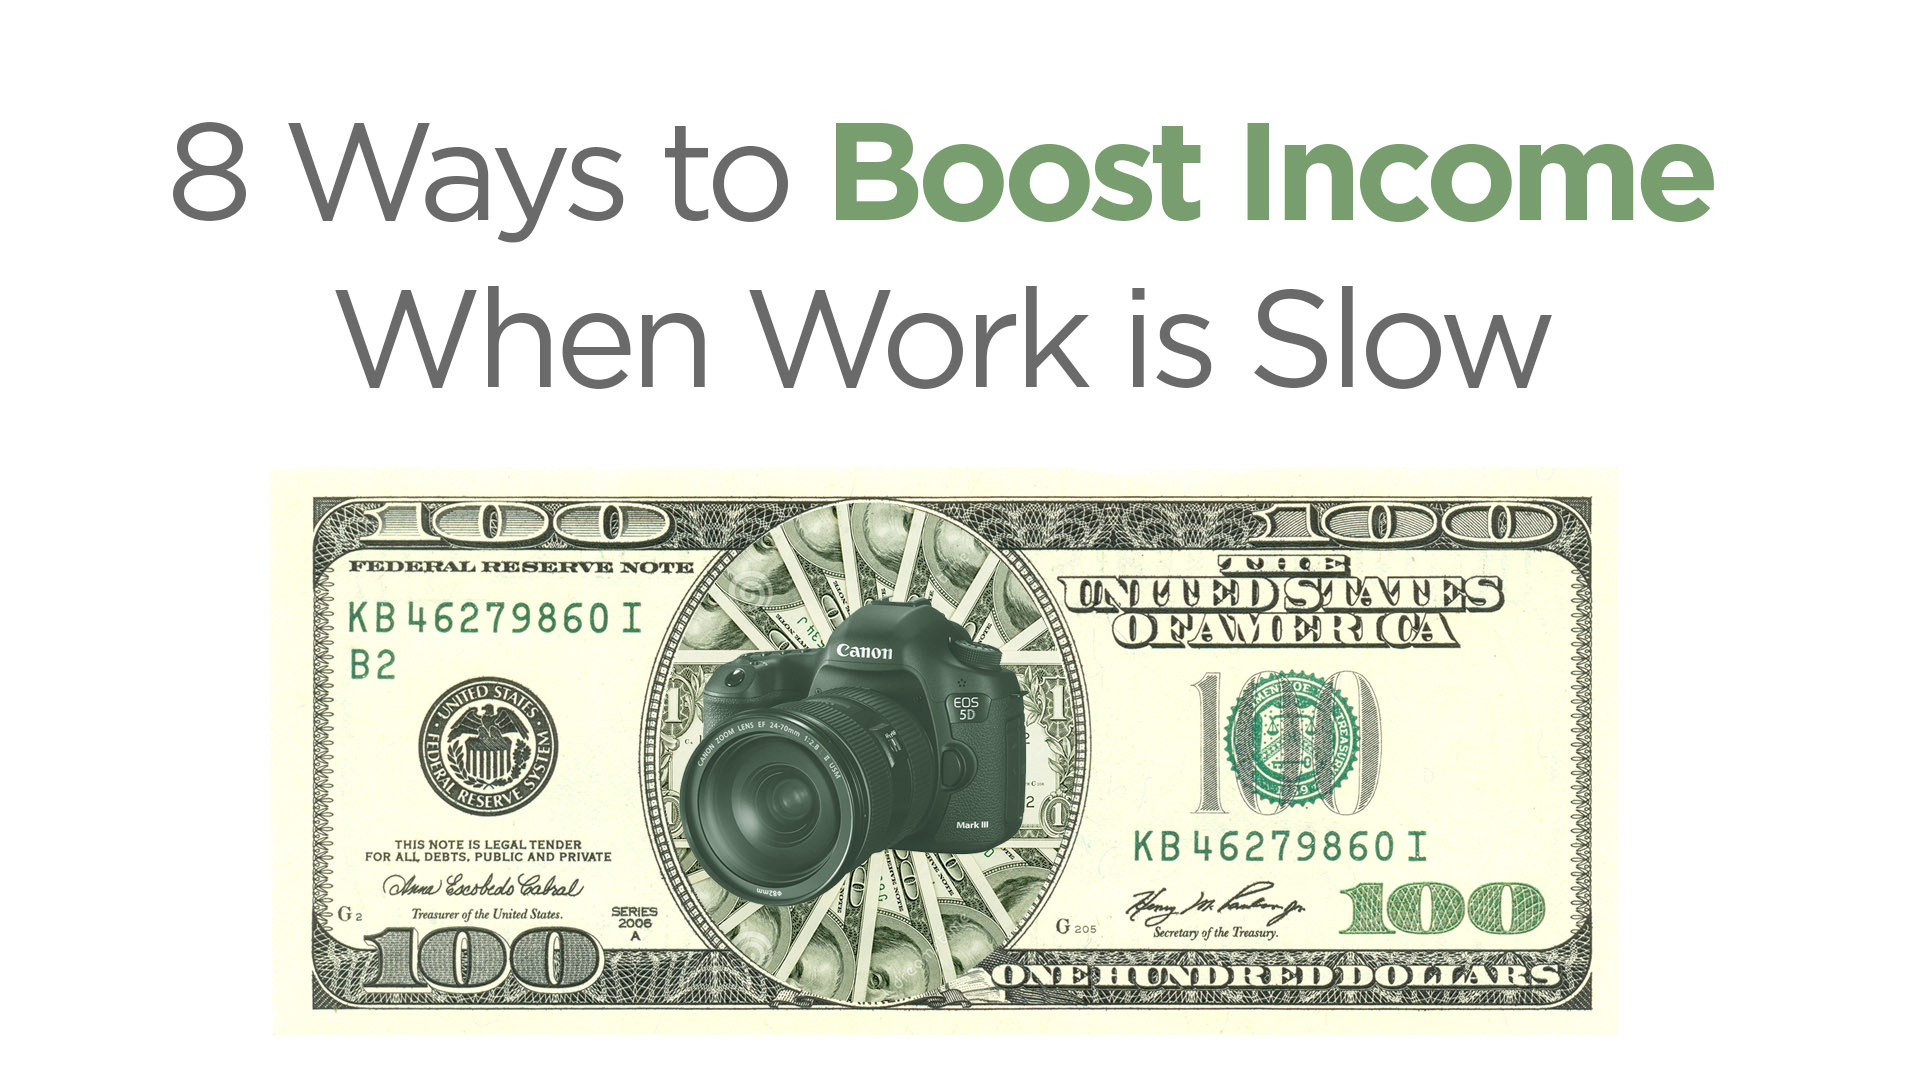 8 Ways to Boost Income When Work is Slow